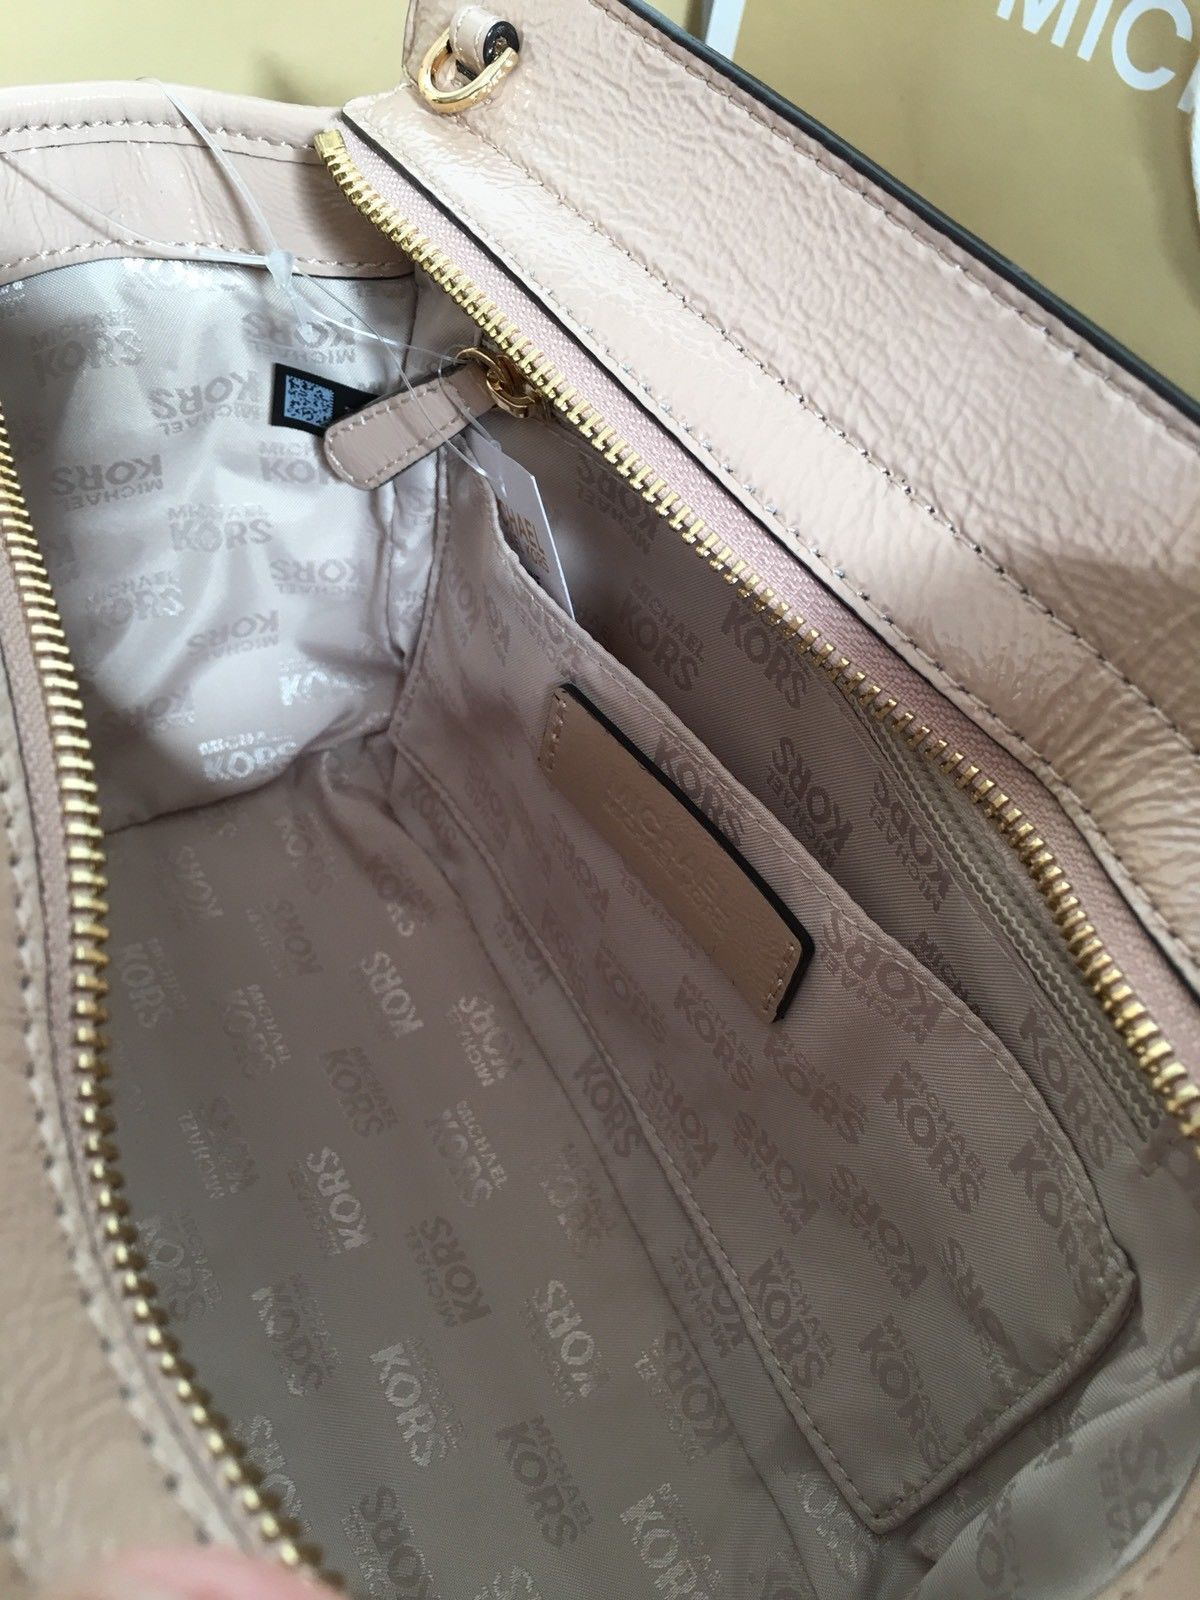 4e51f8552ca4 NWT Michael Kors VIVIANNE Quilted SM TZ Patent Leather Messenger Bag OYSTER  $348